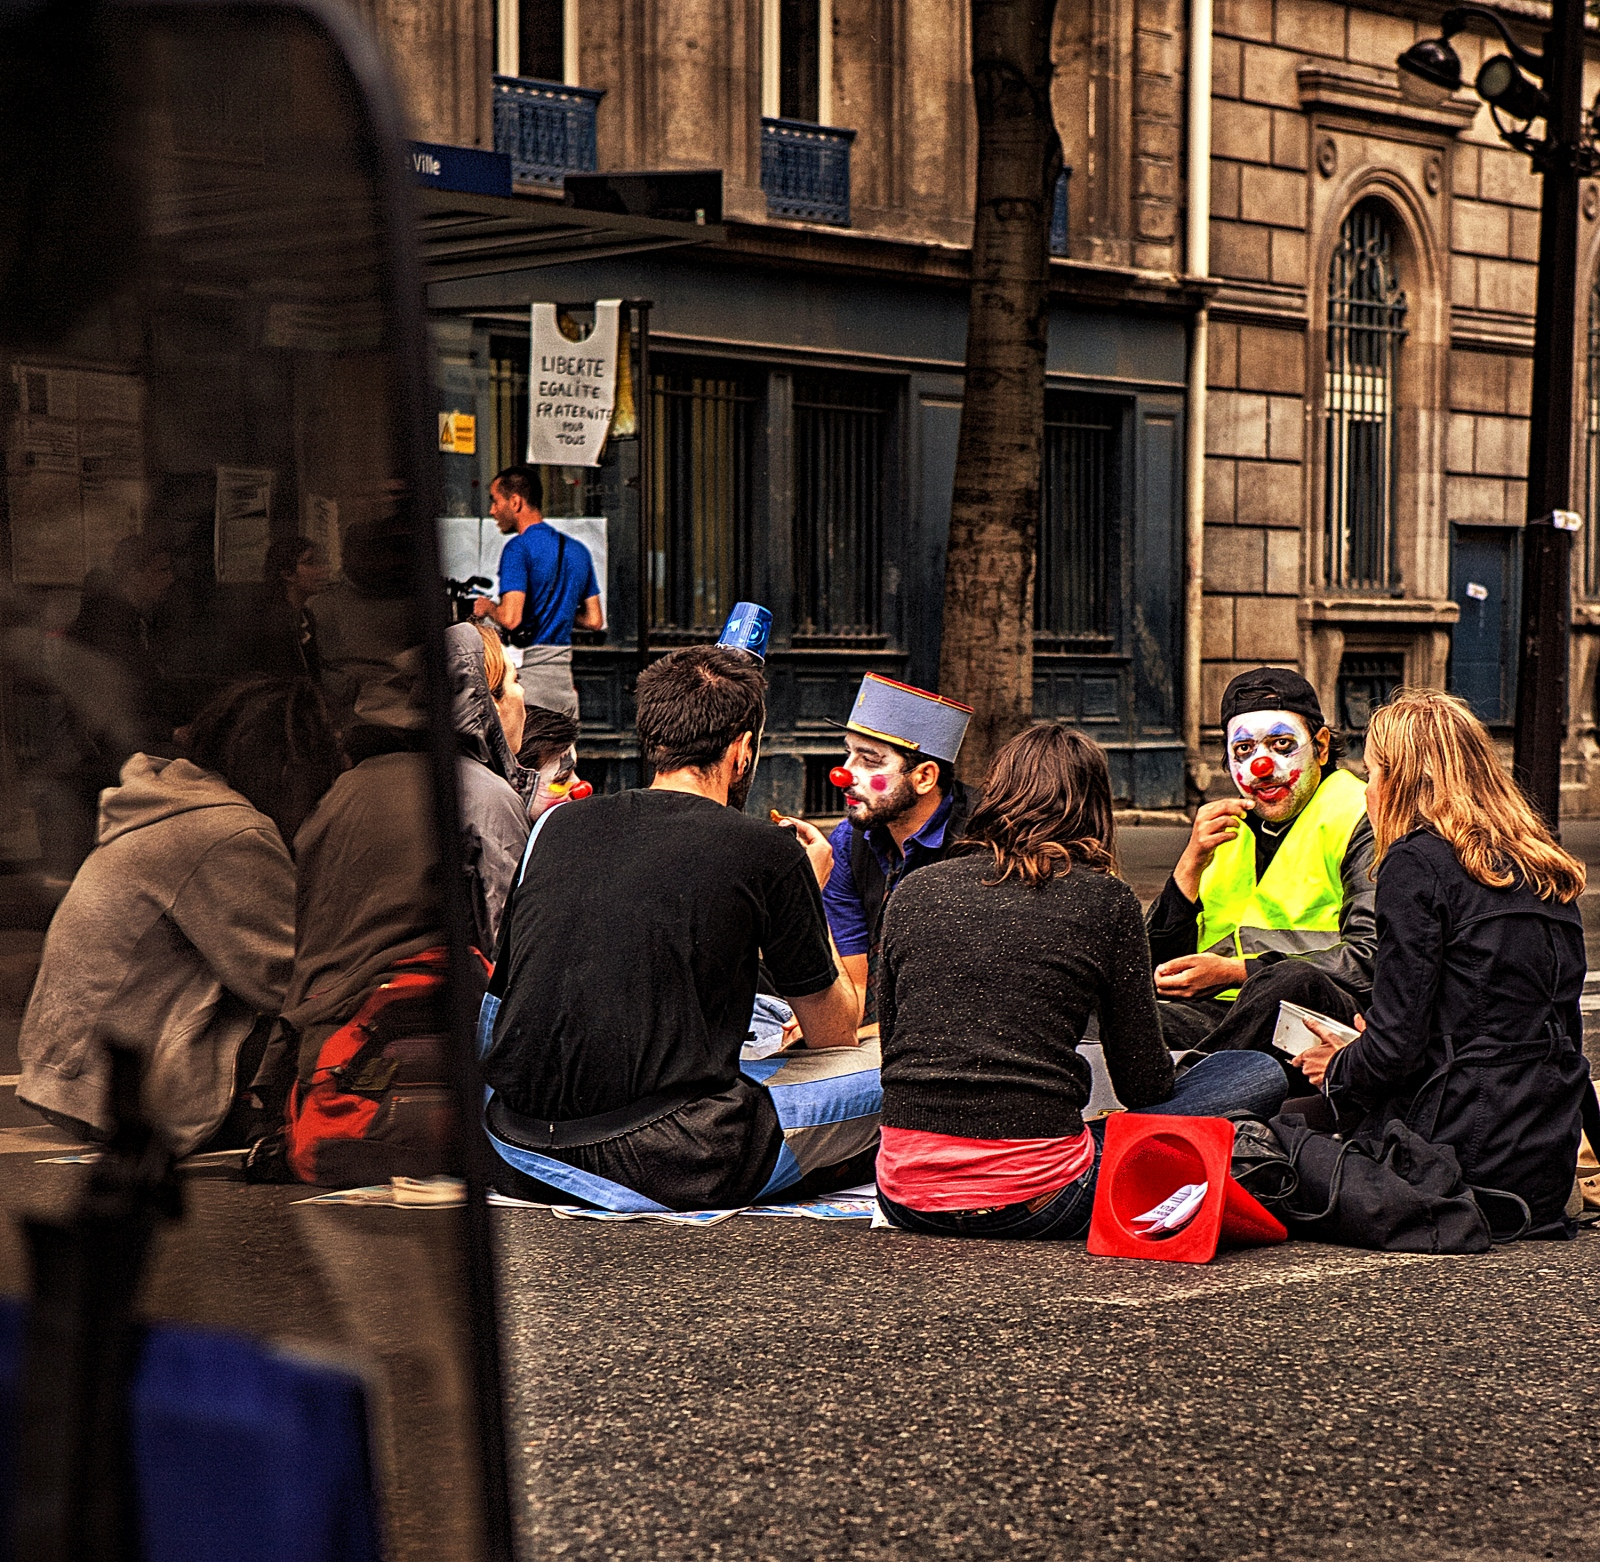 A bevy of clowns in a sit down protest in Paris.